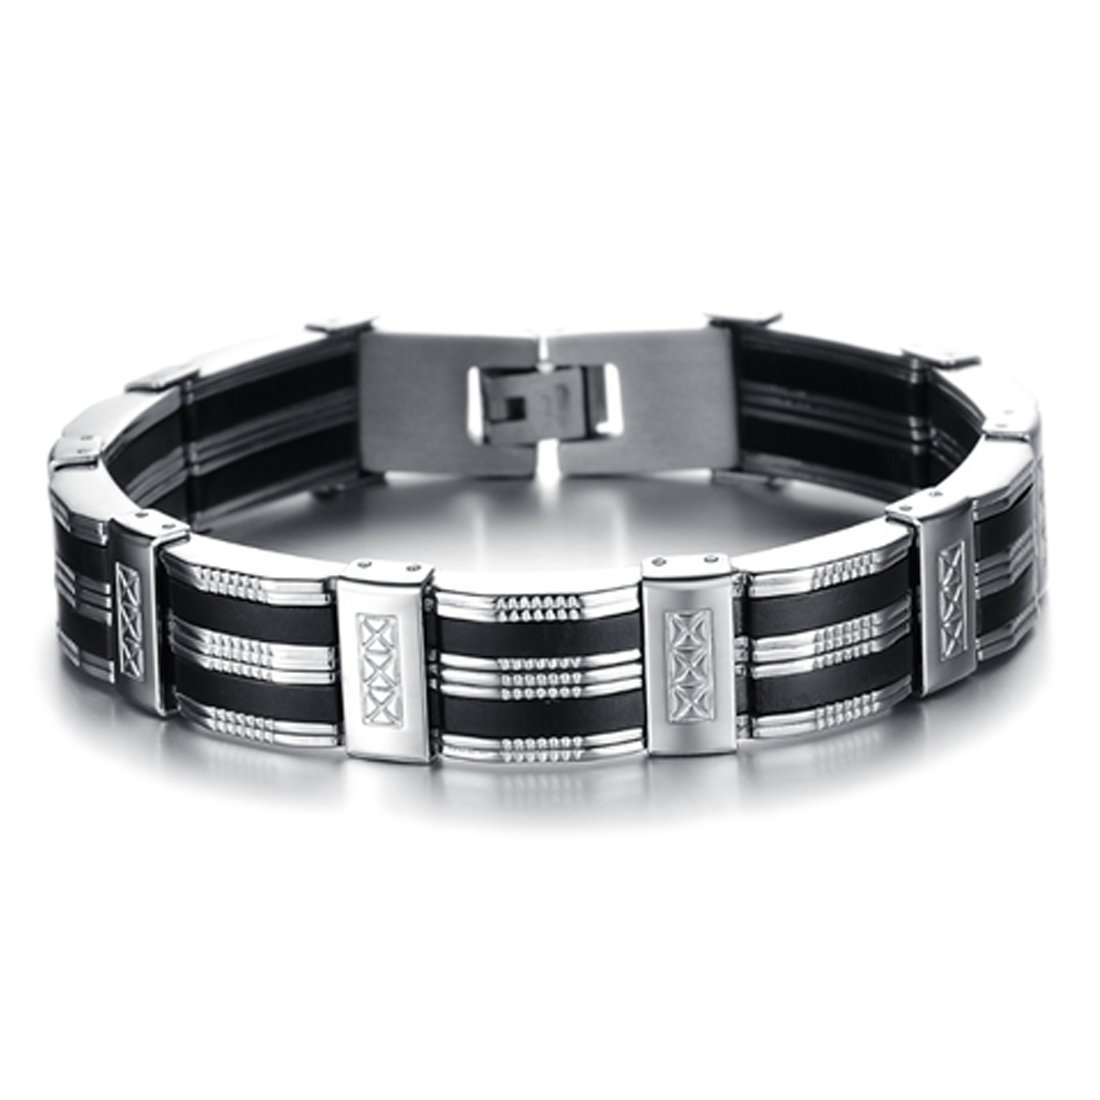 Chain Cuff Stainless Steel Men's Bracelet Free Ship Deal